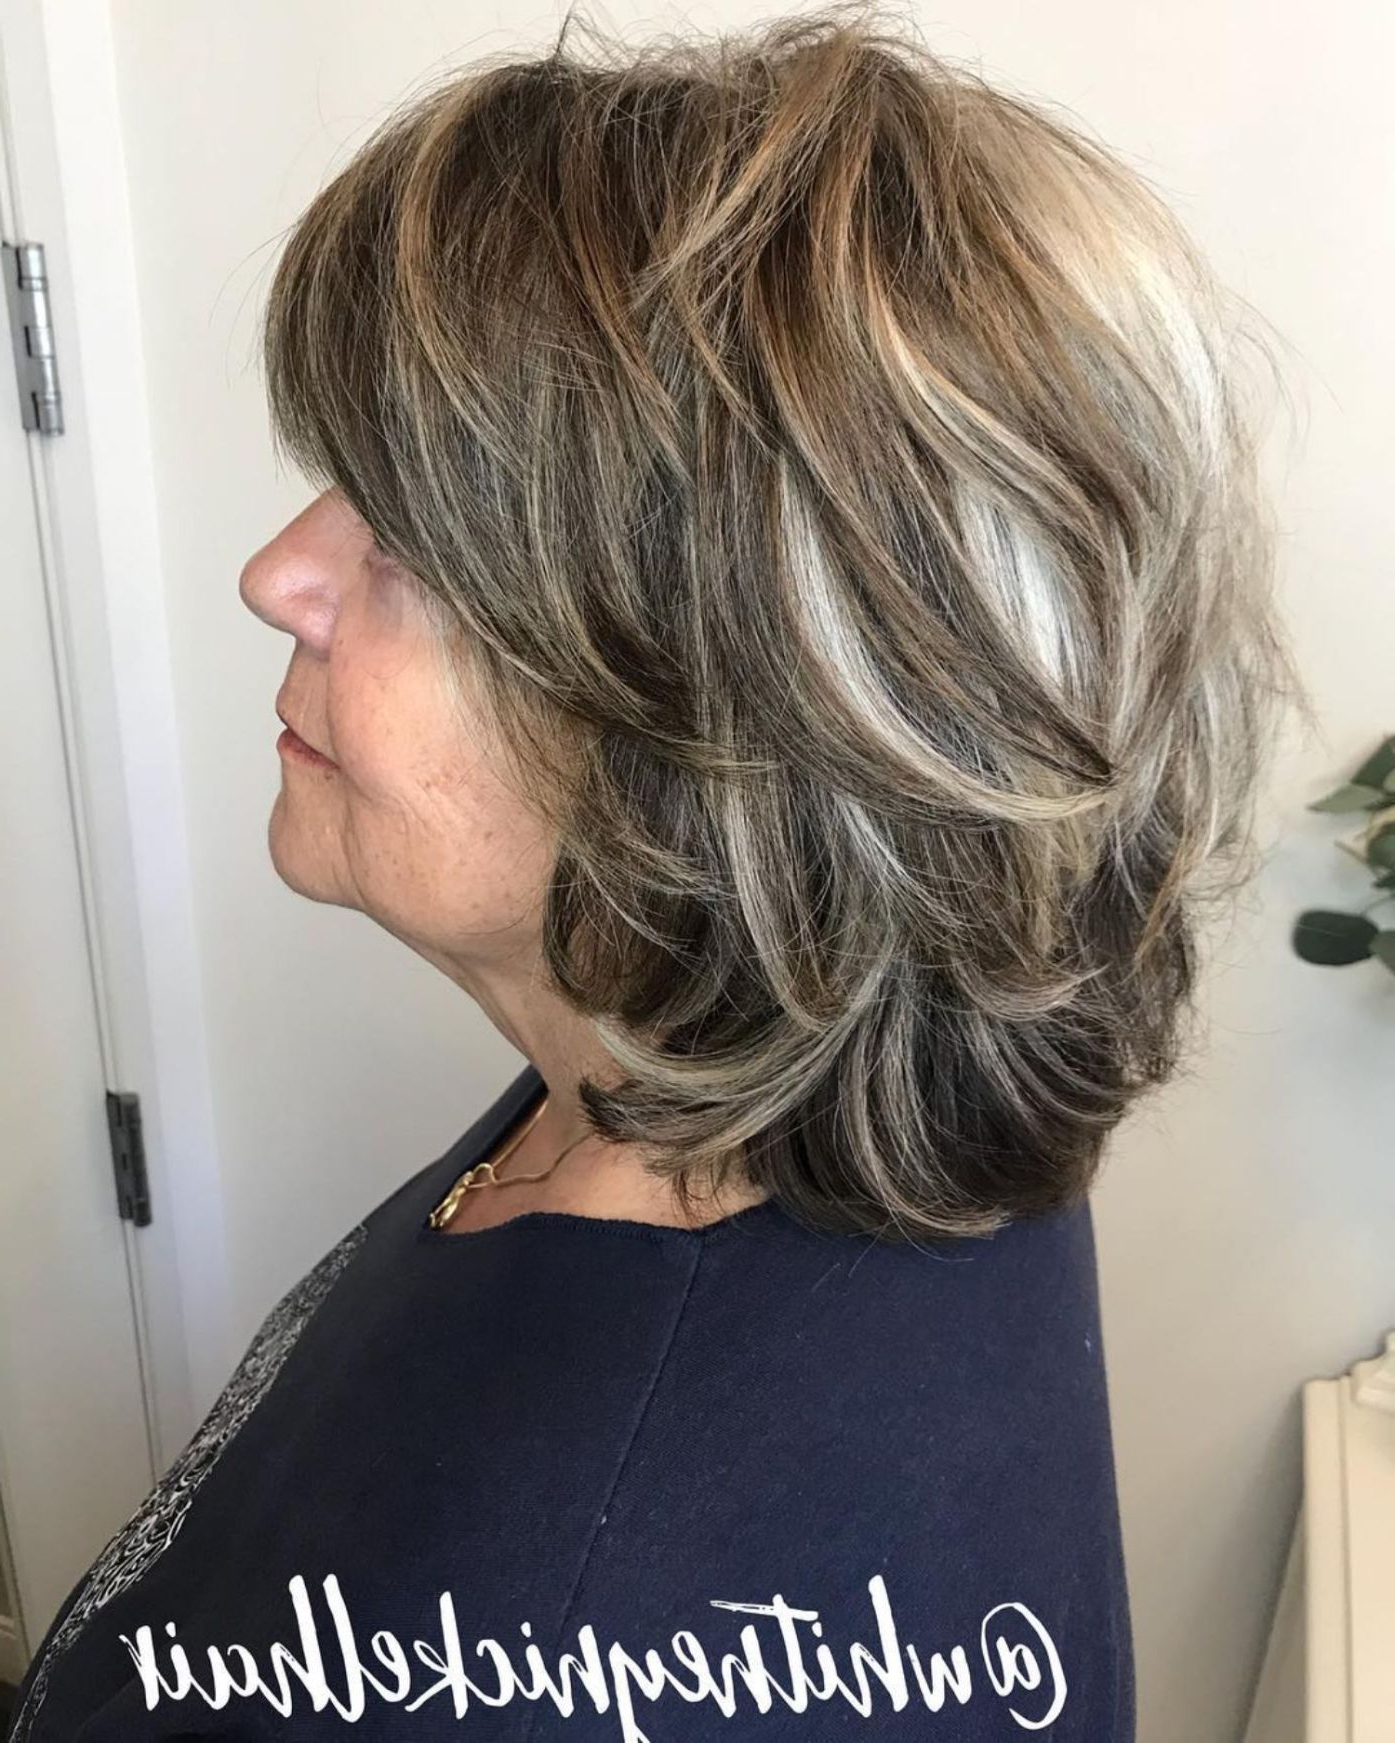 80 Best Modern Hairstyles And Haircuts For Women Over 50 In With Piece Y Golden Bob Hairstyles With Silver Highlights (View 3 of 20)